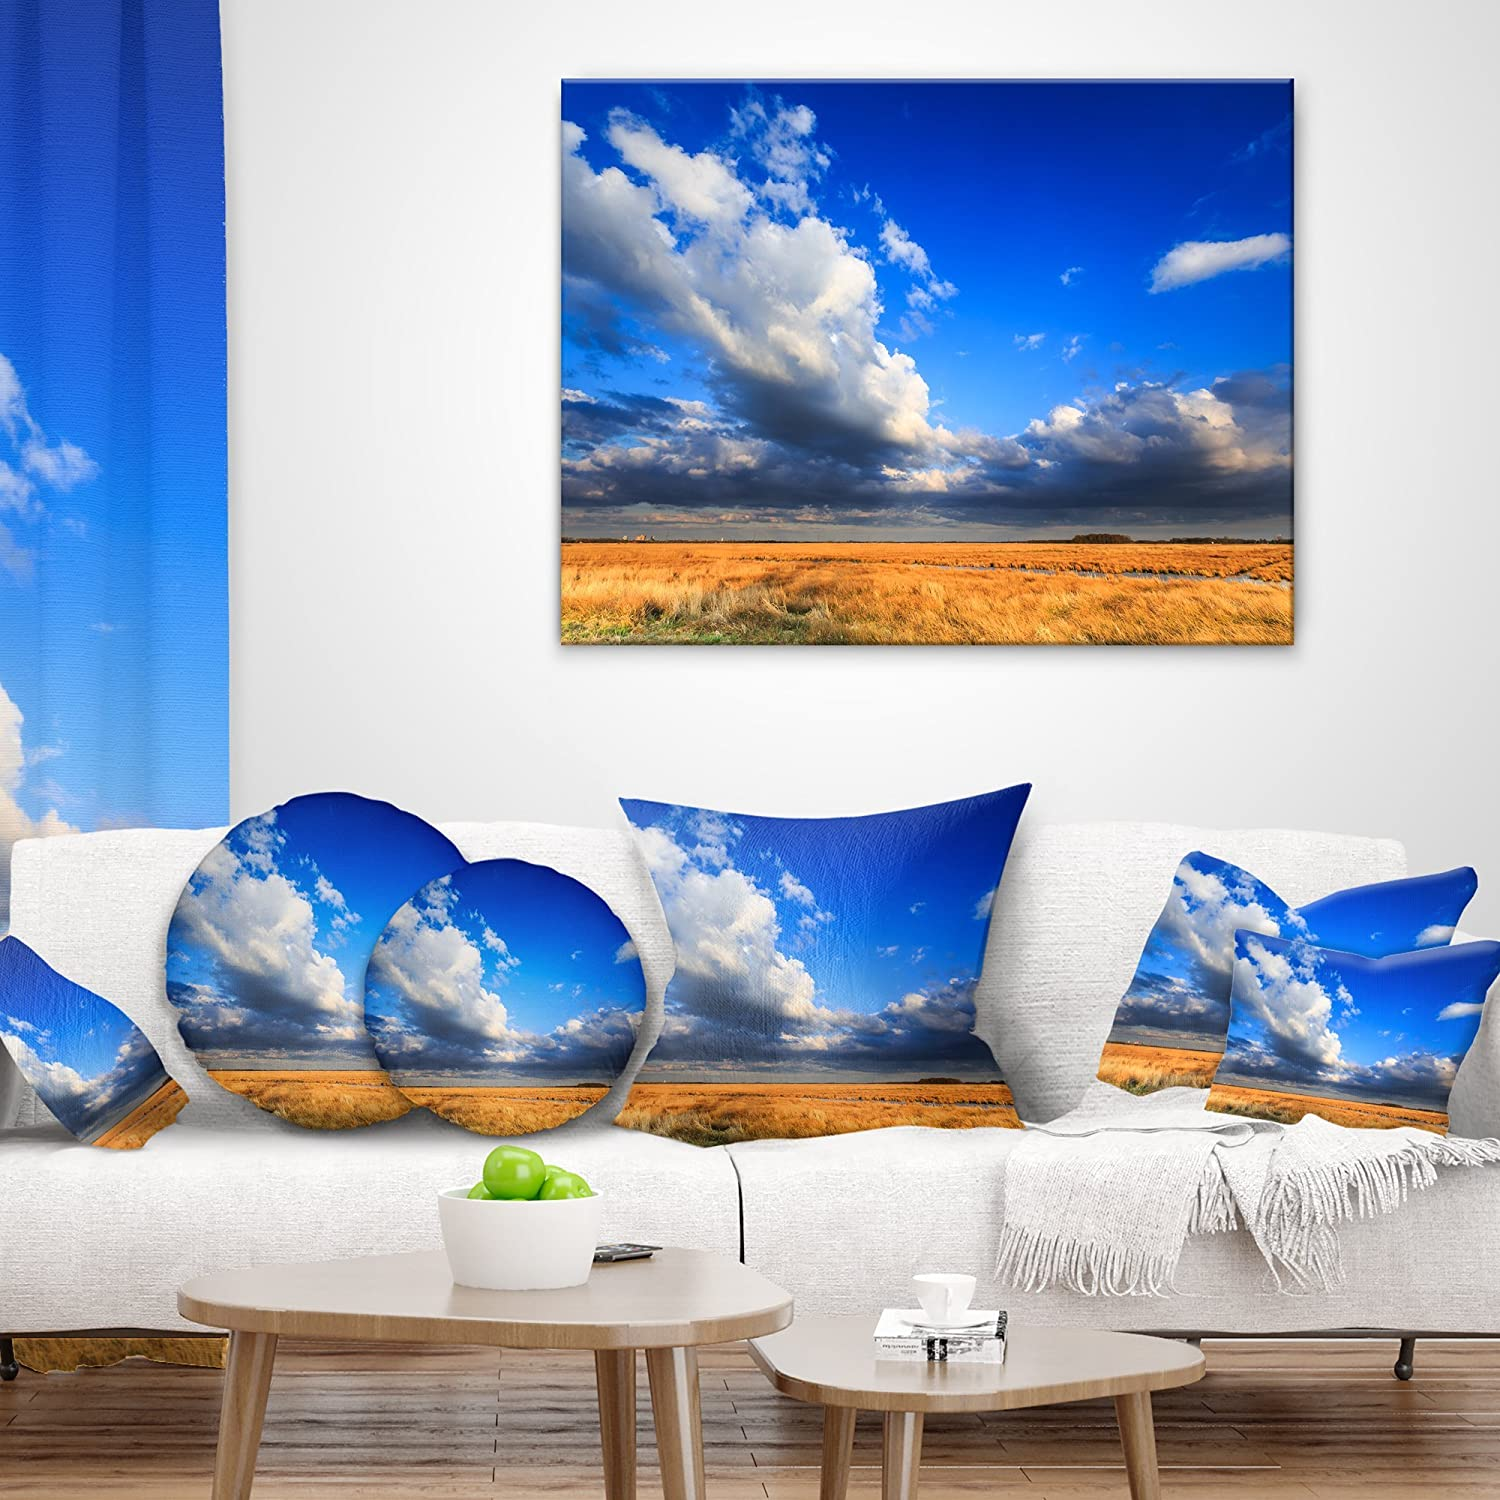 Insert Side x 26 in Sofa Throw Pillow 26 in Designart CU14802-26-26 Clouded Blue Sky Over Prairie Landscape Printed Cushion Cover for Living Room in